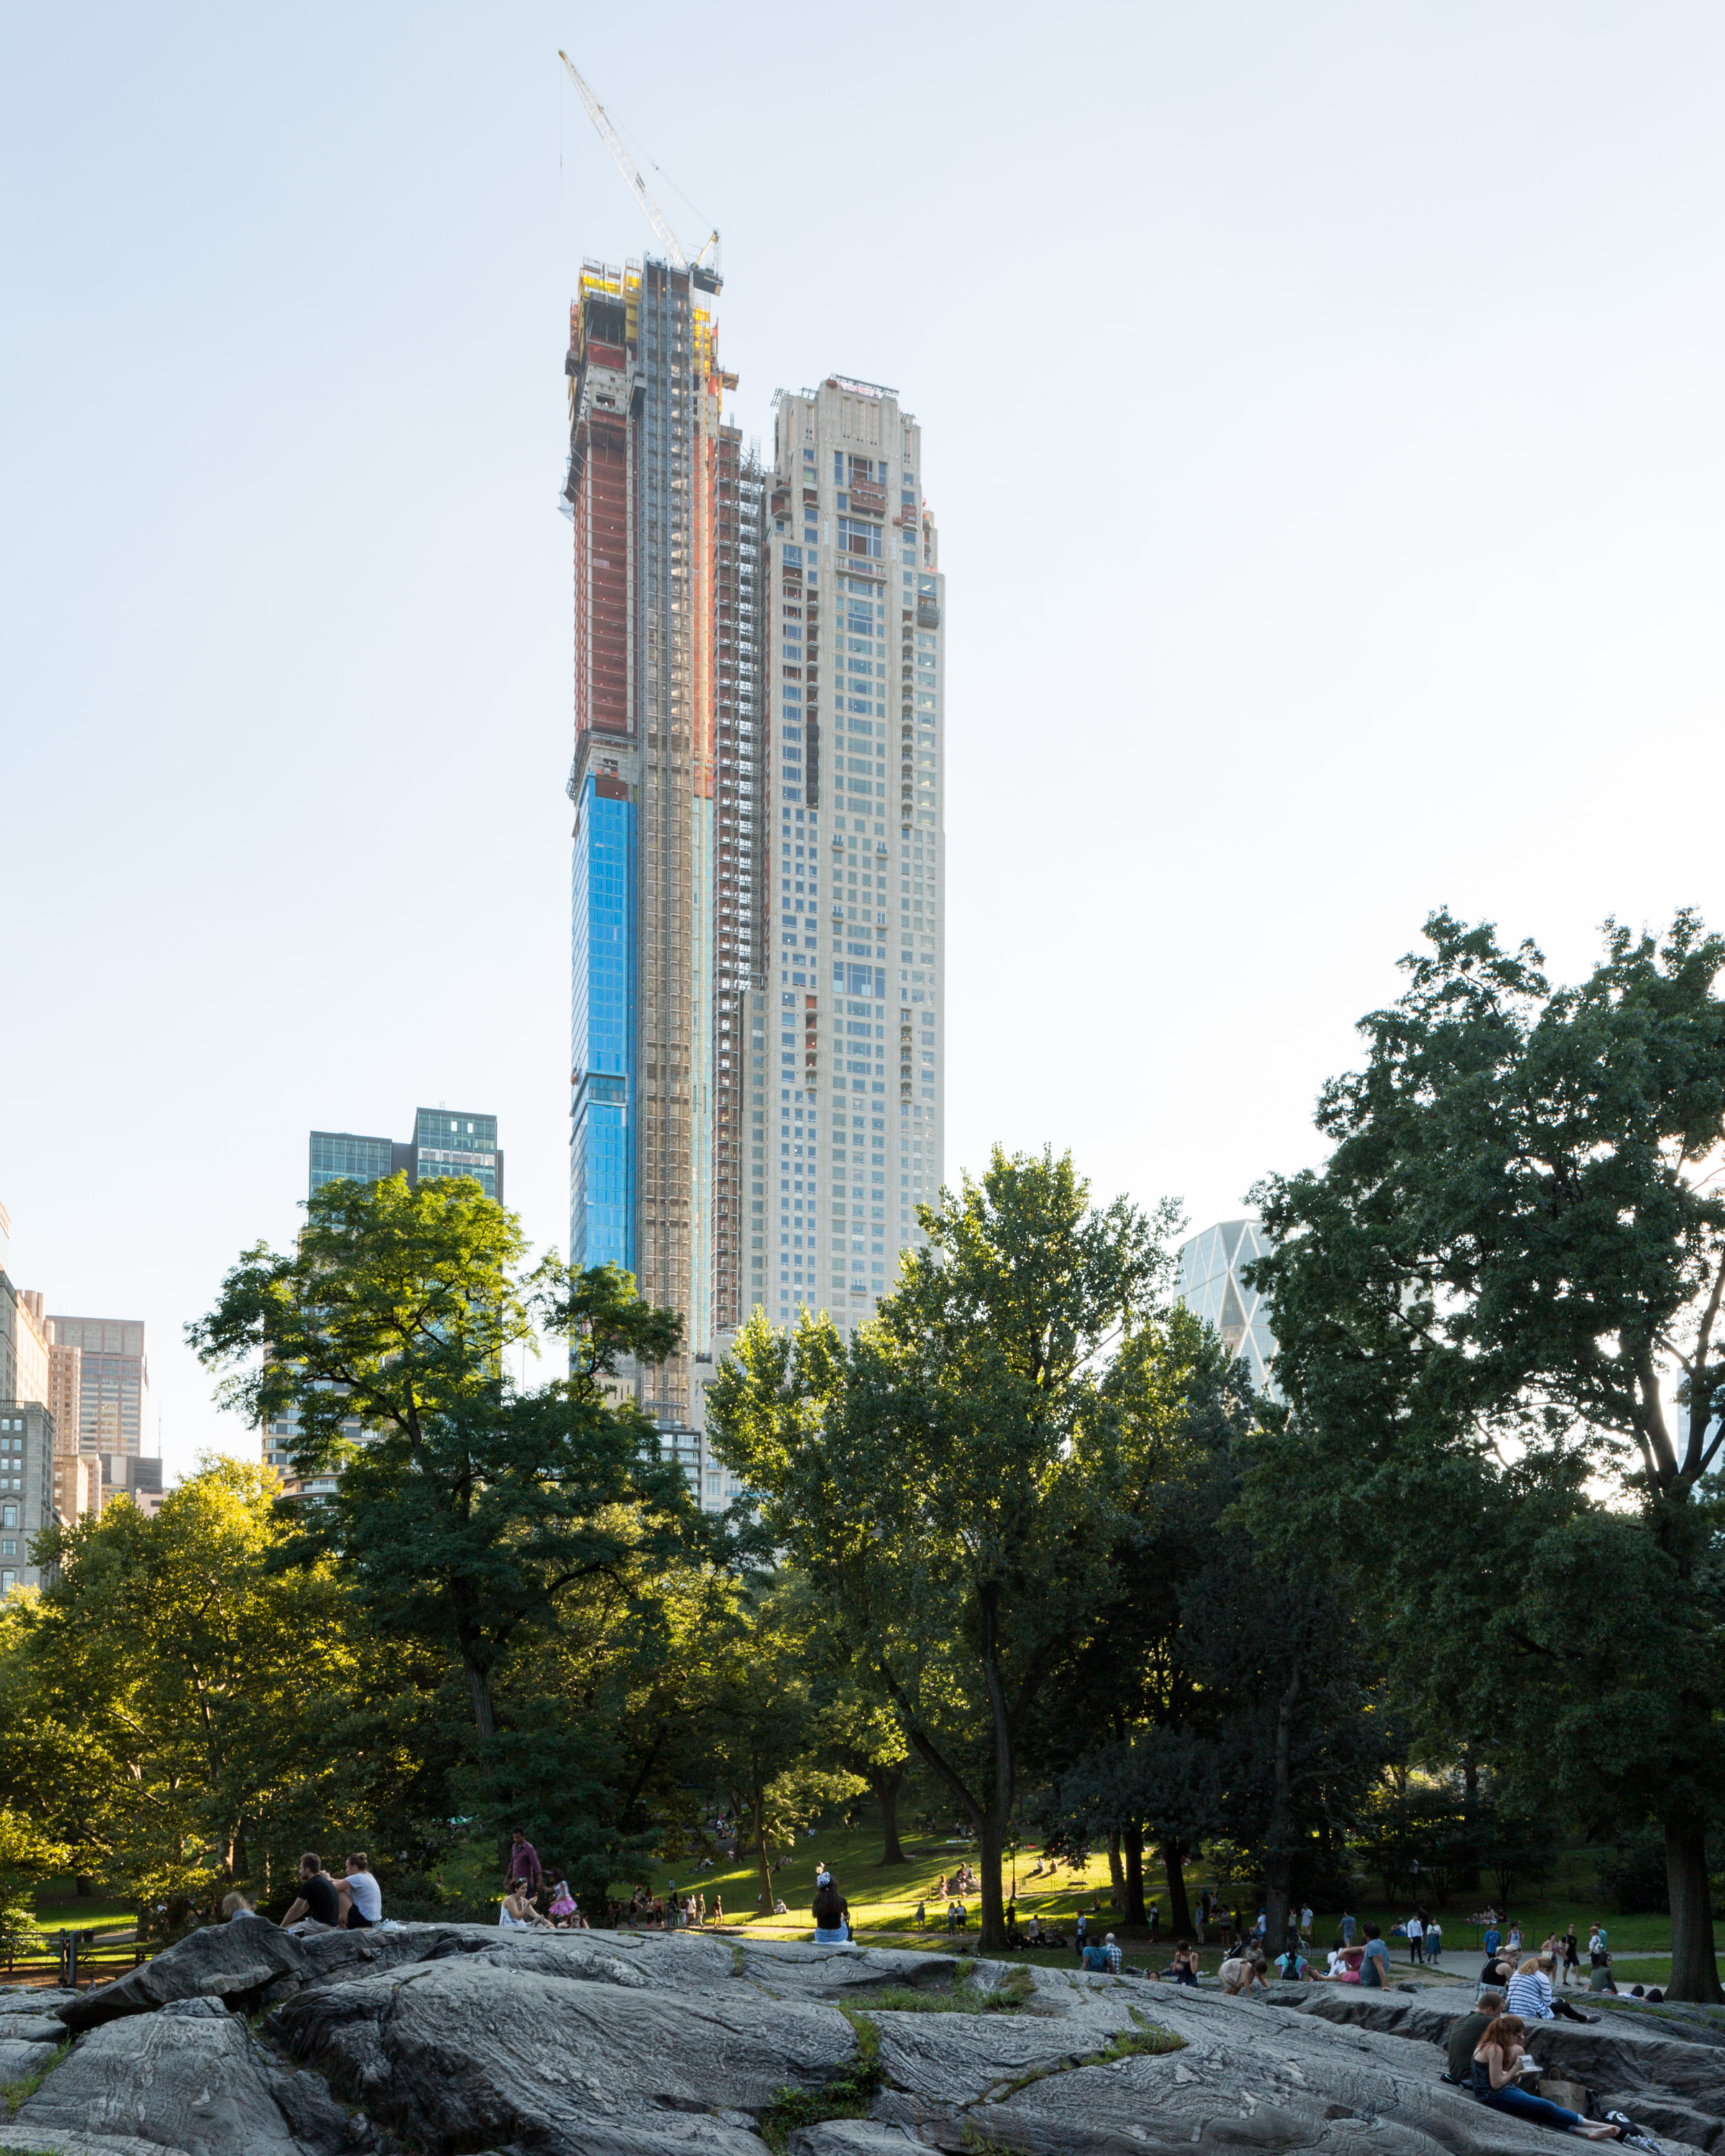 Central Park New York Condos: 220 Central Park South's Façade Almost Finished In Midtown